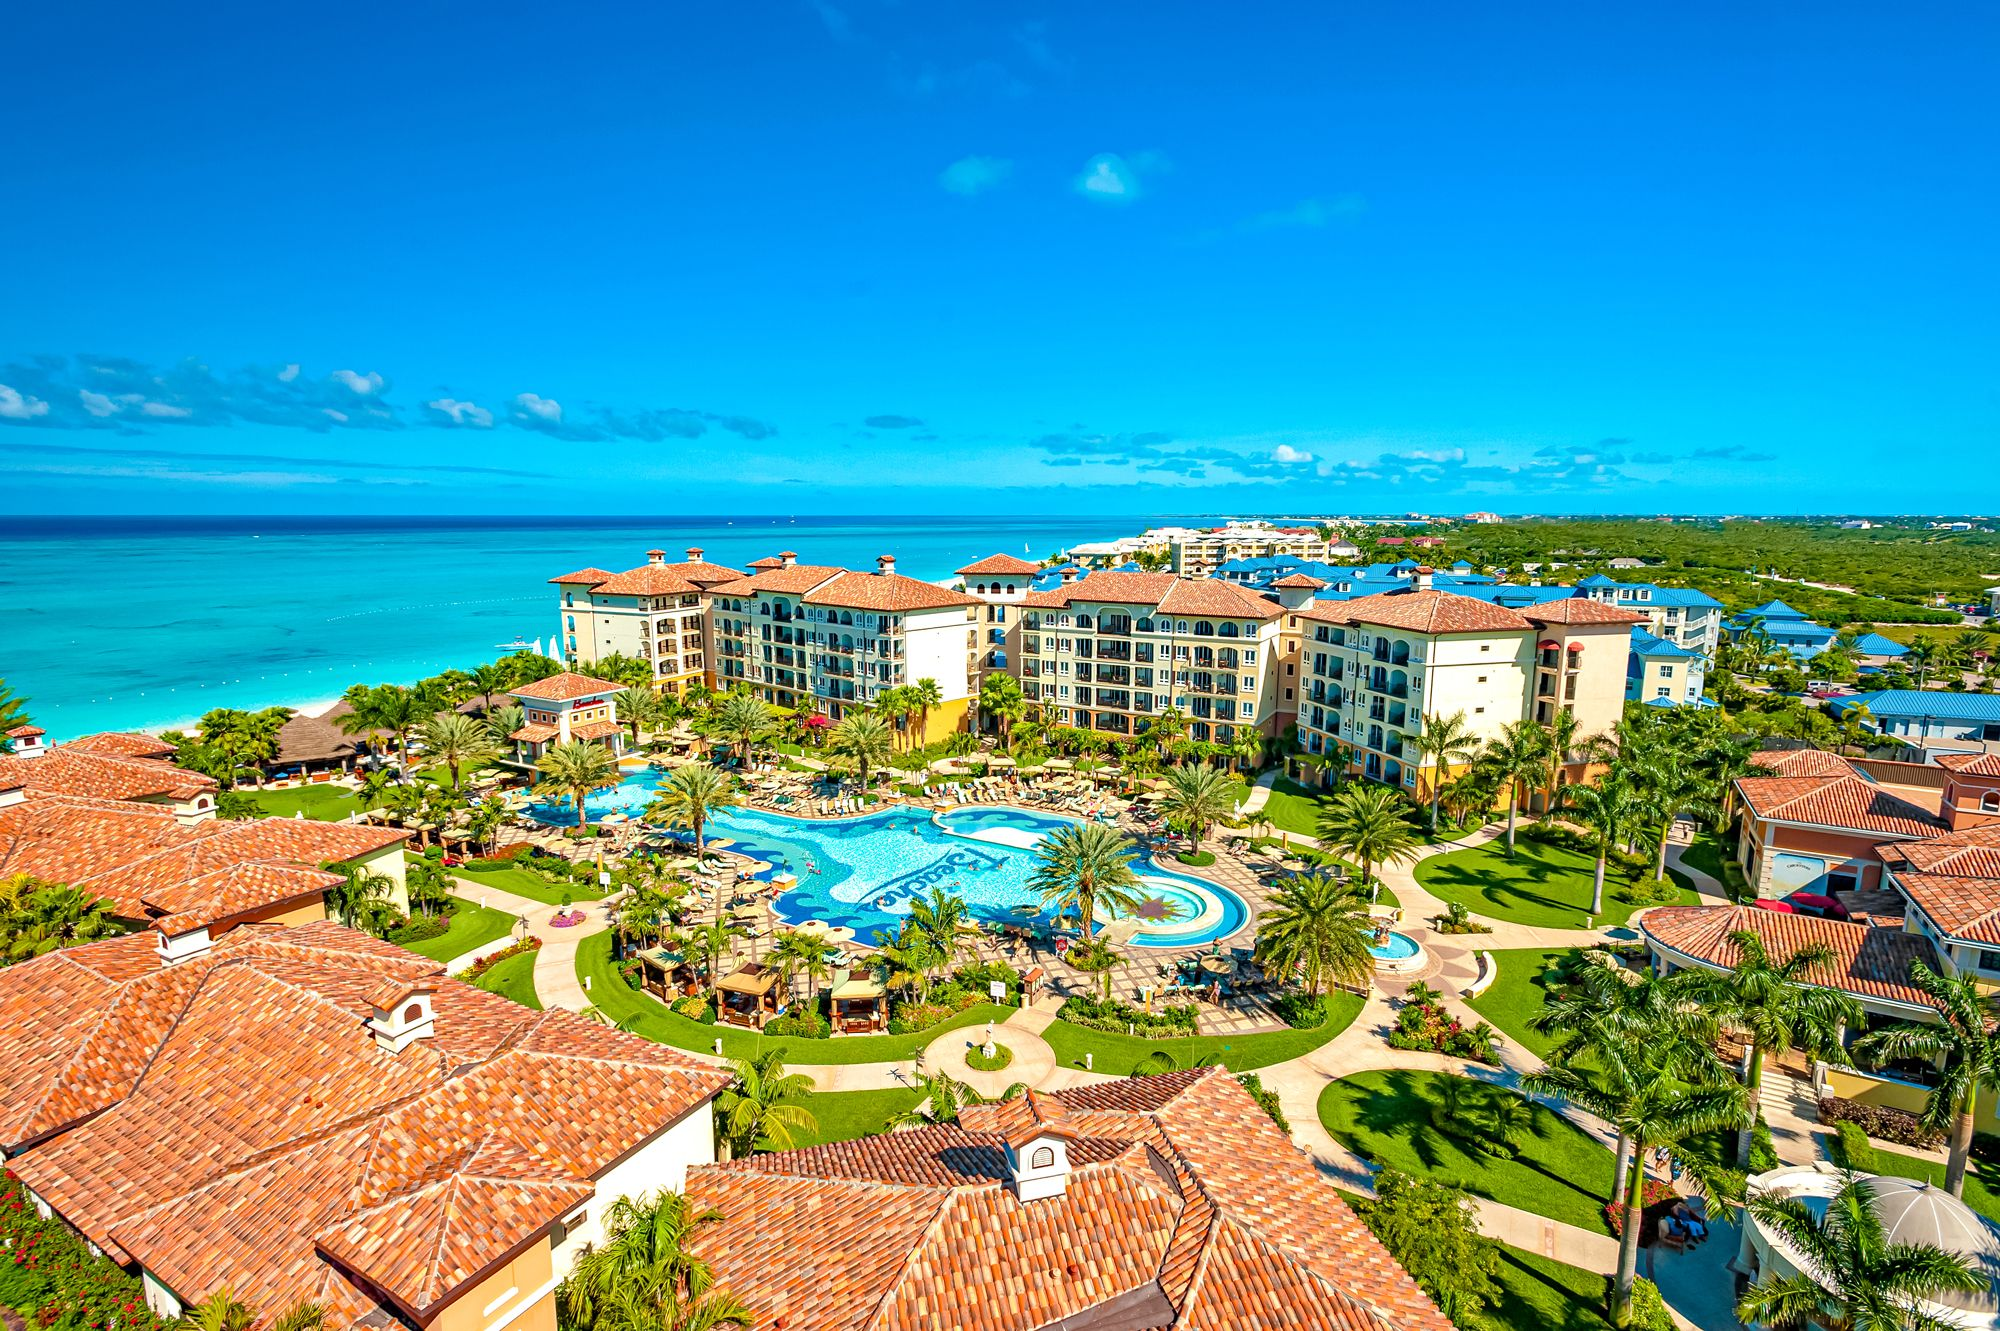 Beaches Turks Caicos Overview Aerial